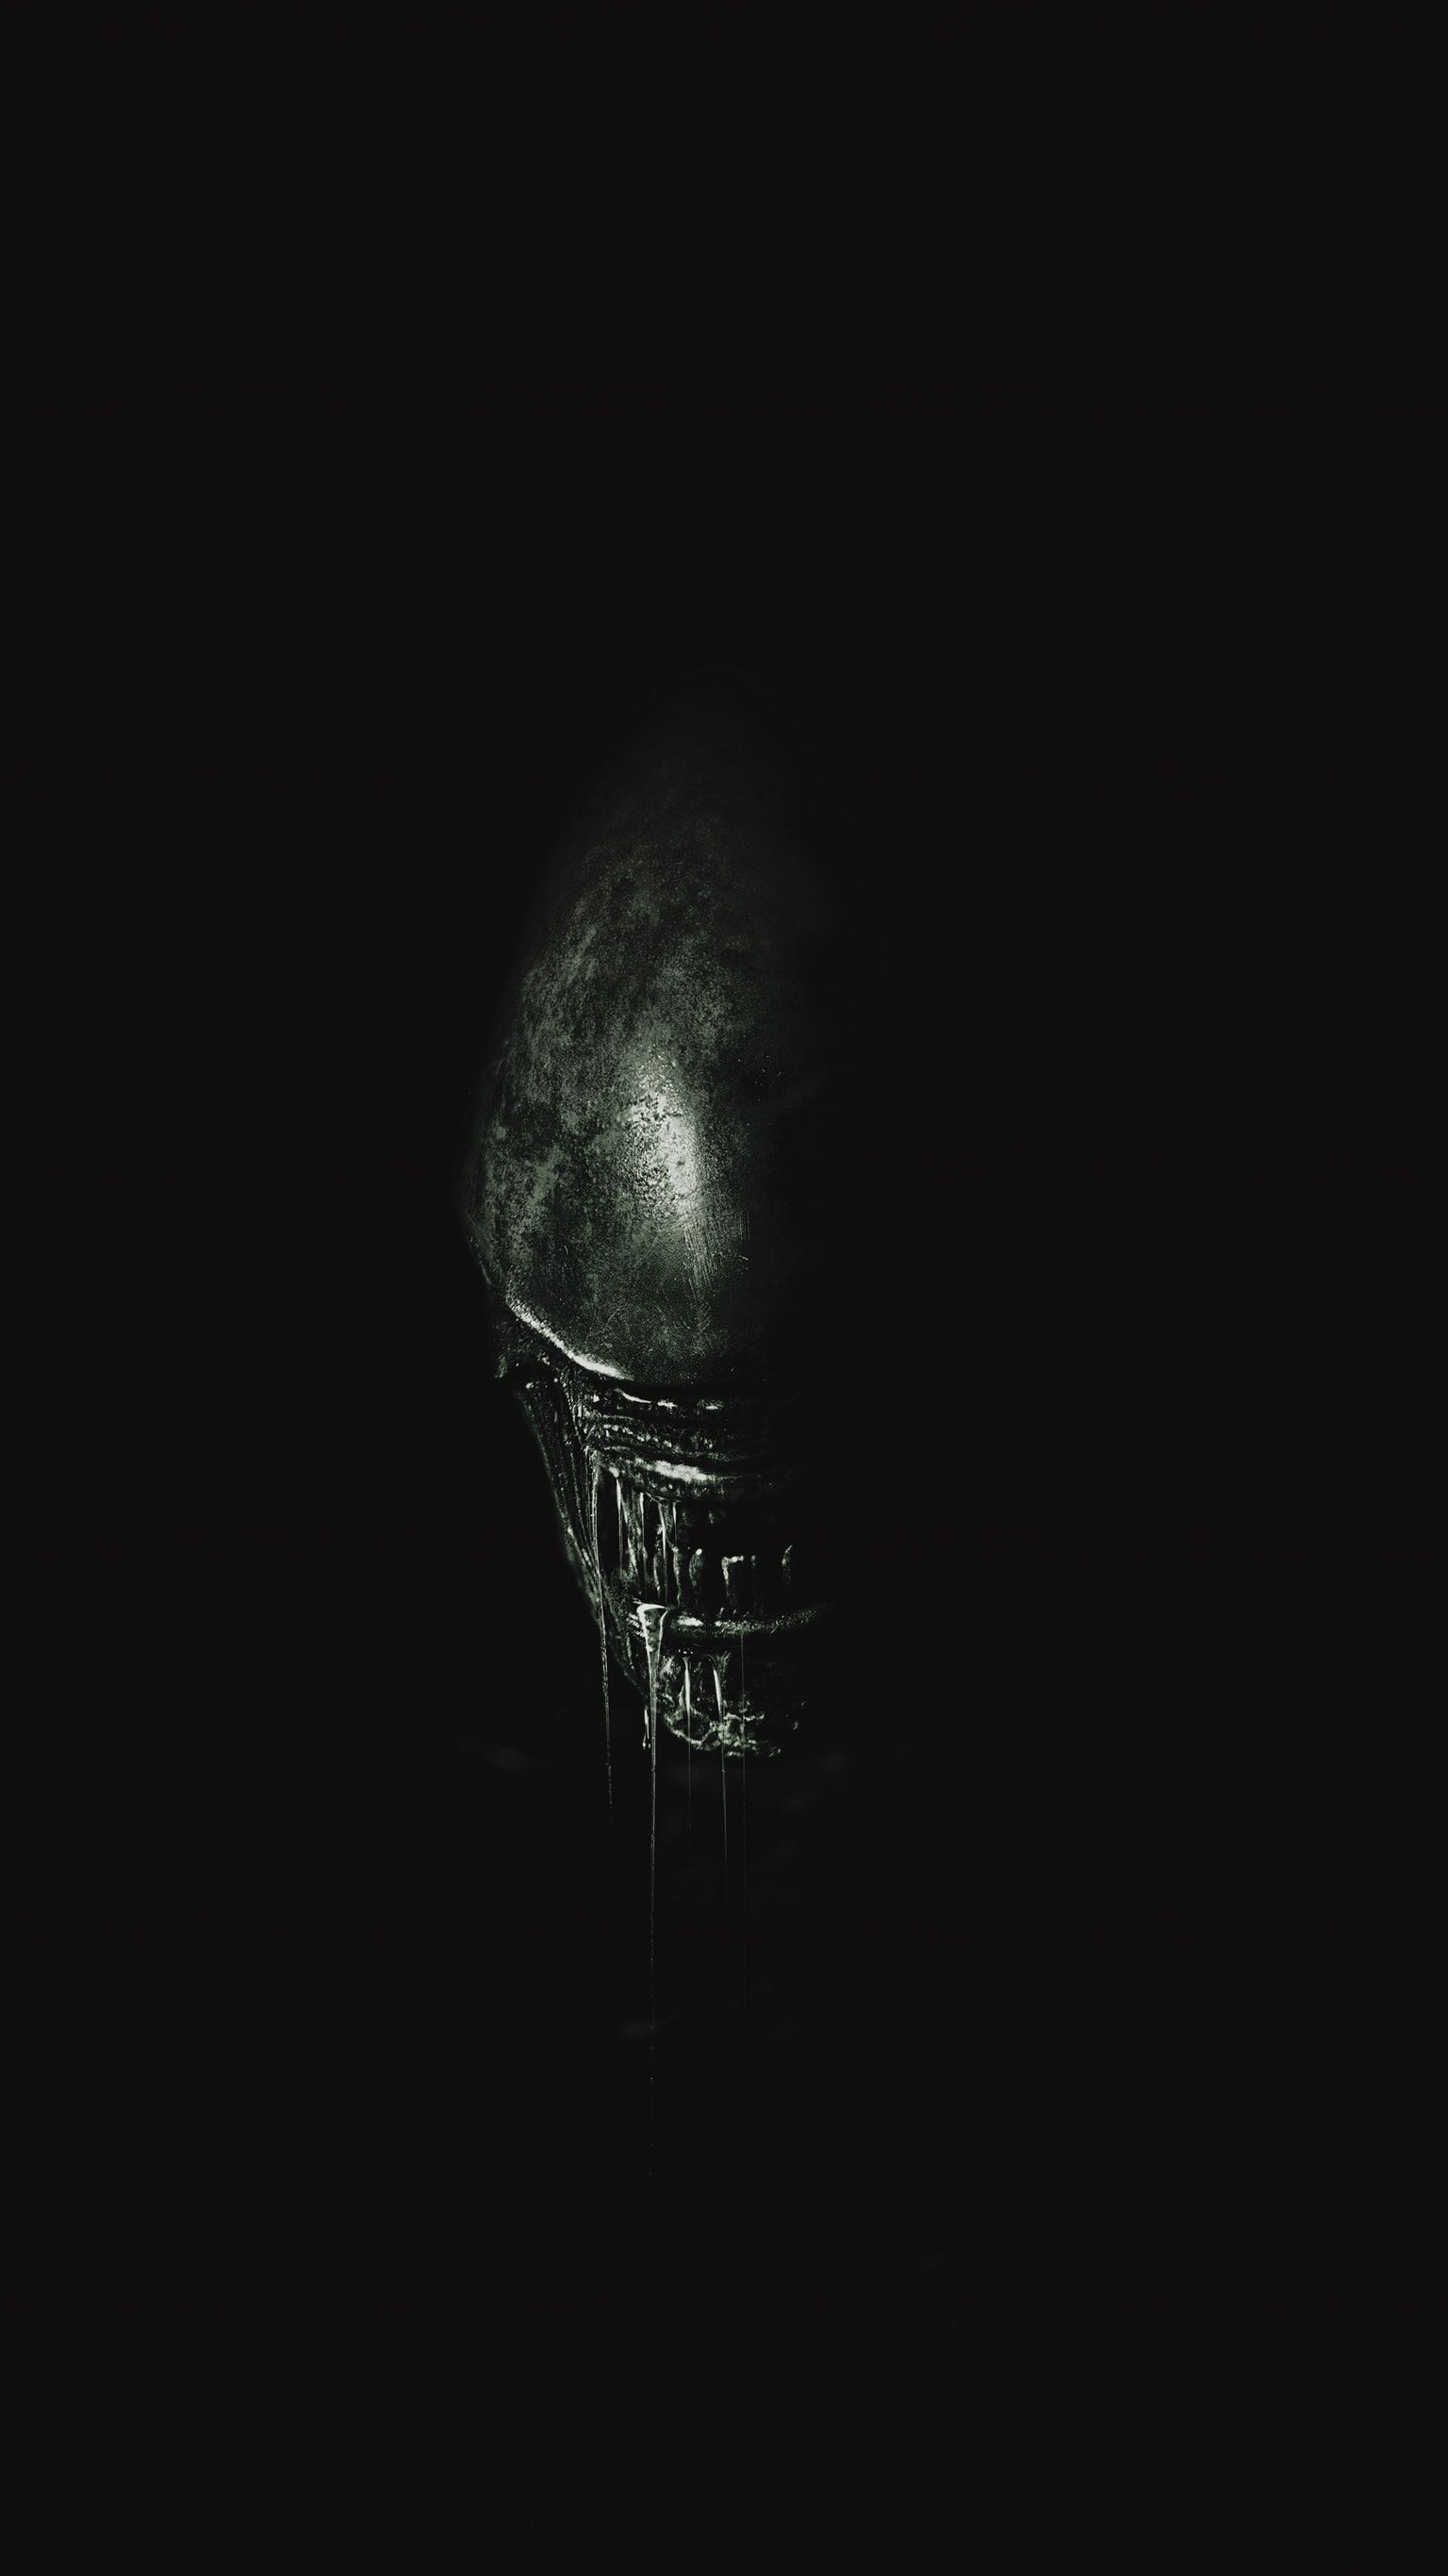 Alien Covenant 2017 Phone Wallpaper Moviemania Aliens Movie Tattoo Alien Artwork Alien